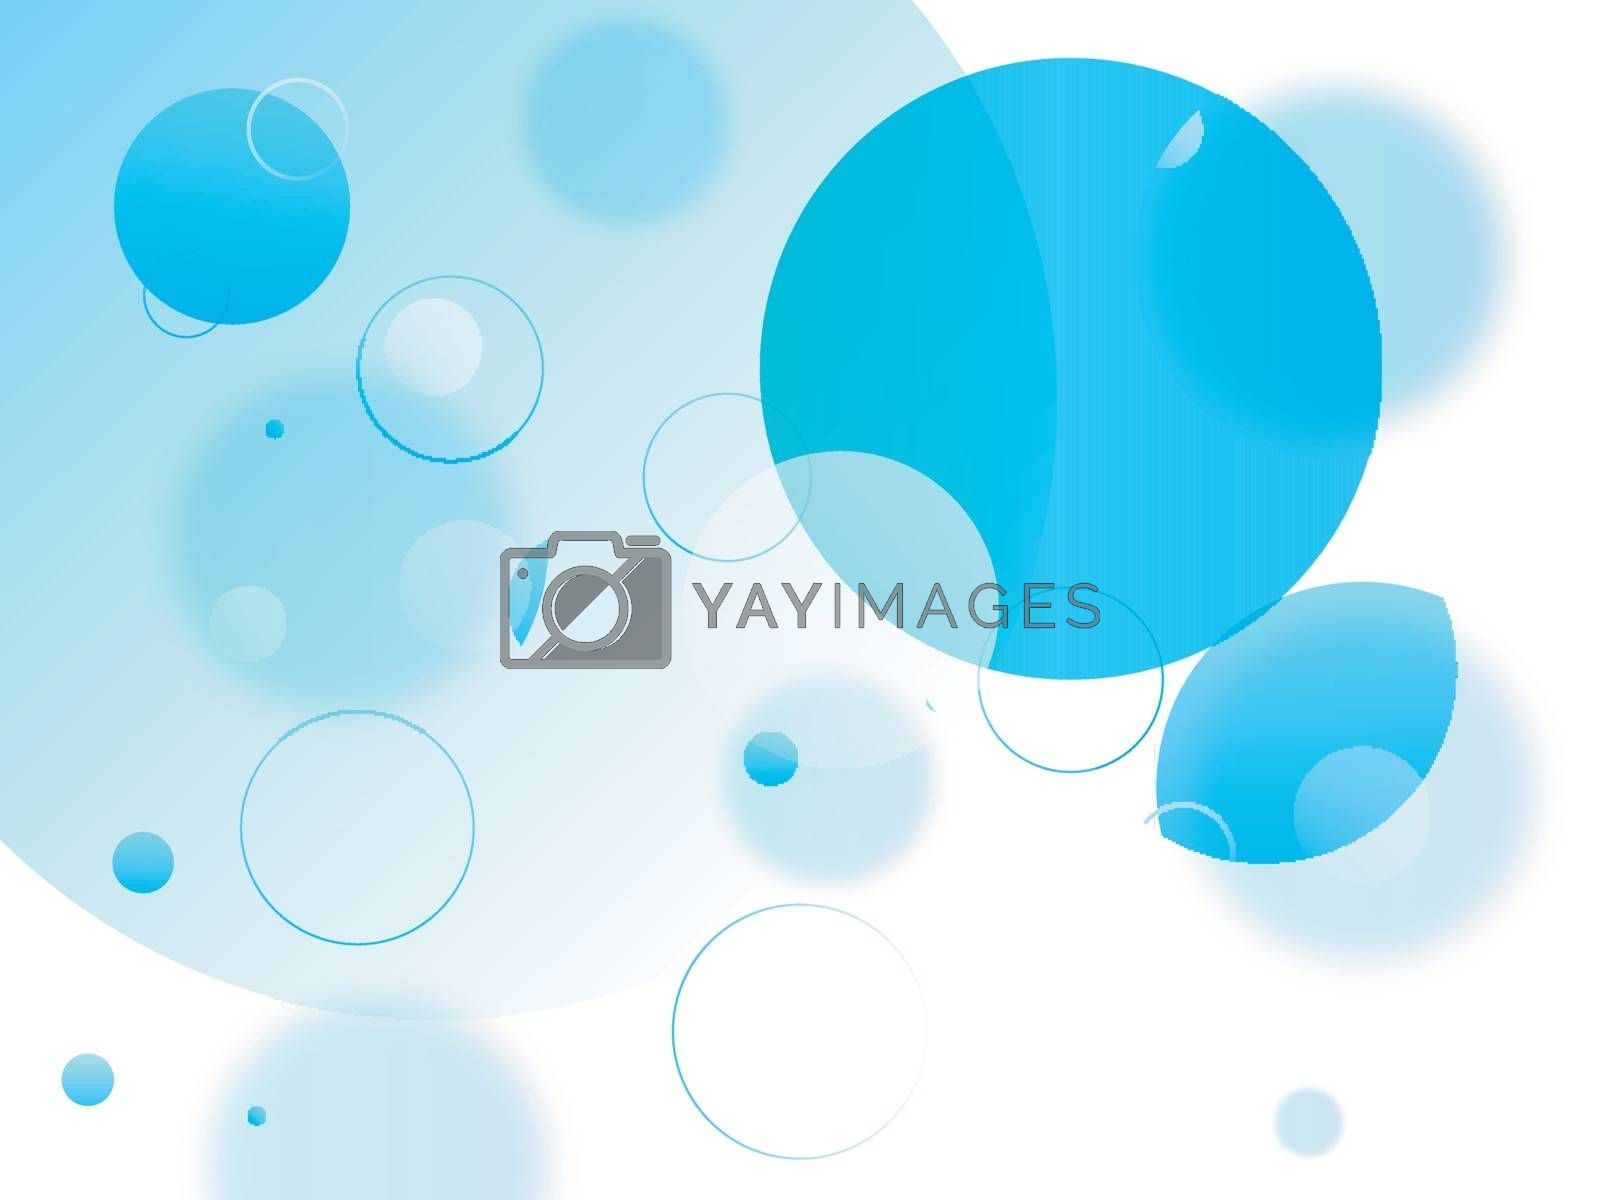 Abstract geometric background with sky blue circles.